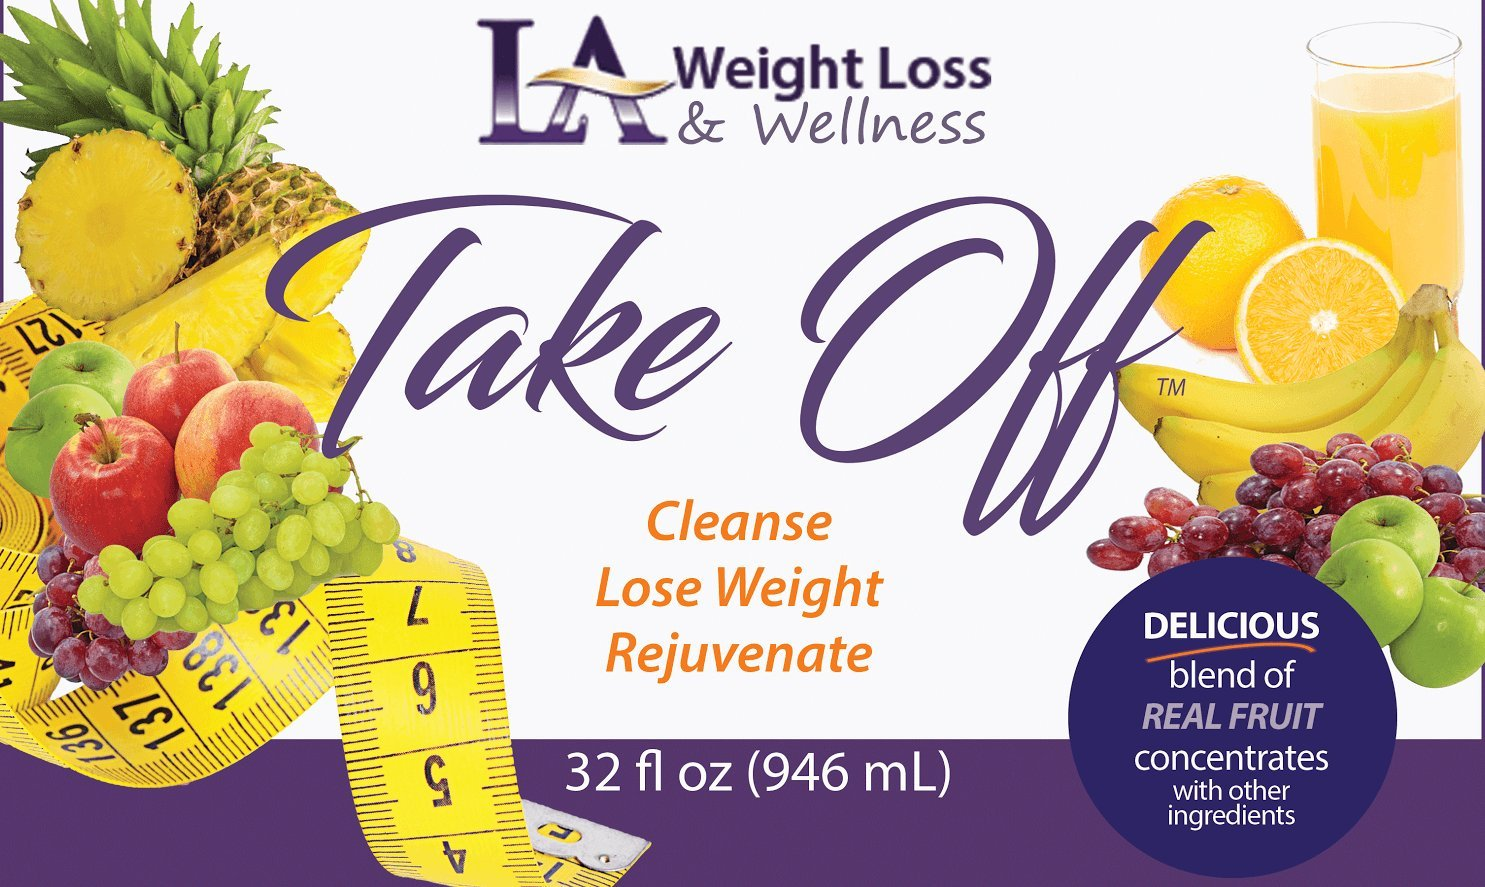 LA Weight Loss Combo - LA Bars & Takeoff Cleanse (PB & Caramel Brownie) by L A Weight Loss & Wellness (Image #7)